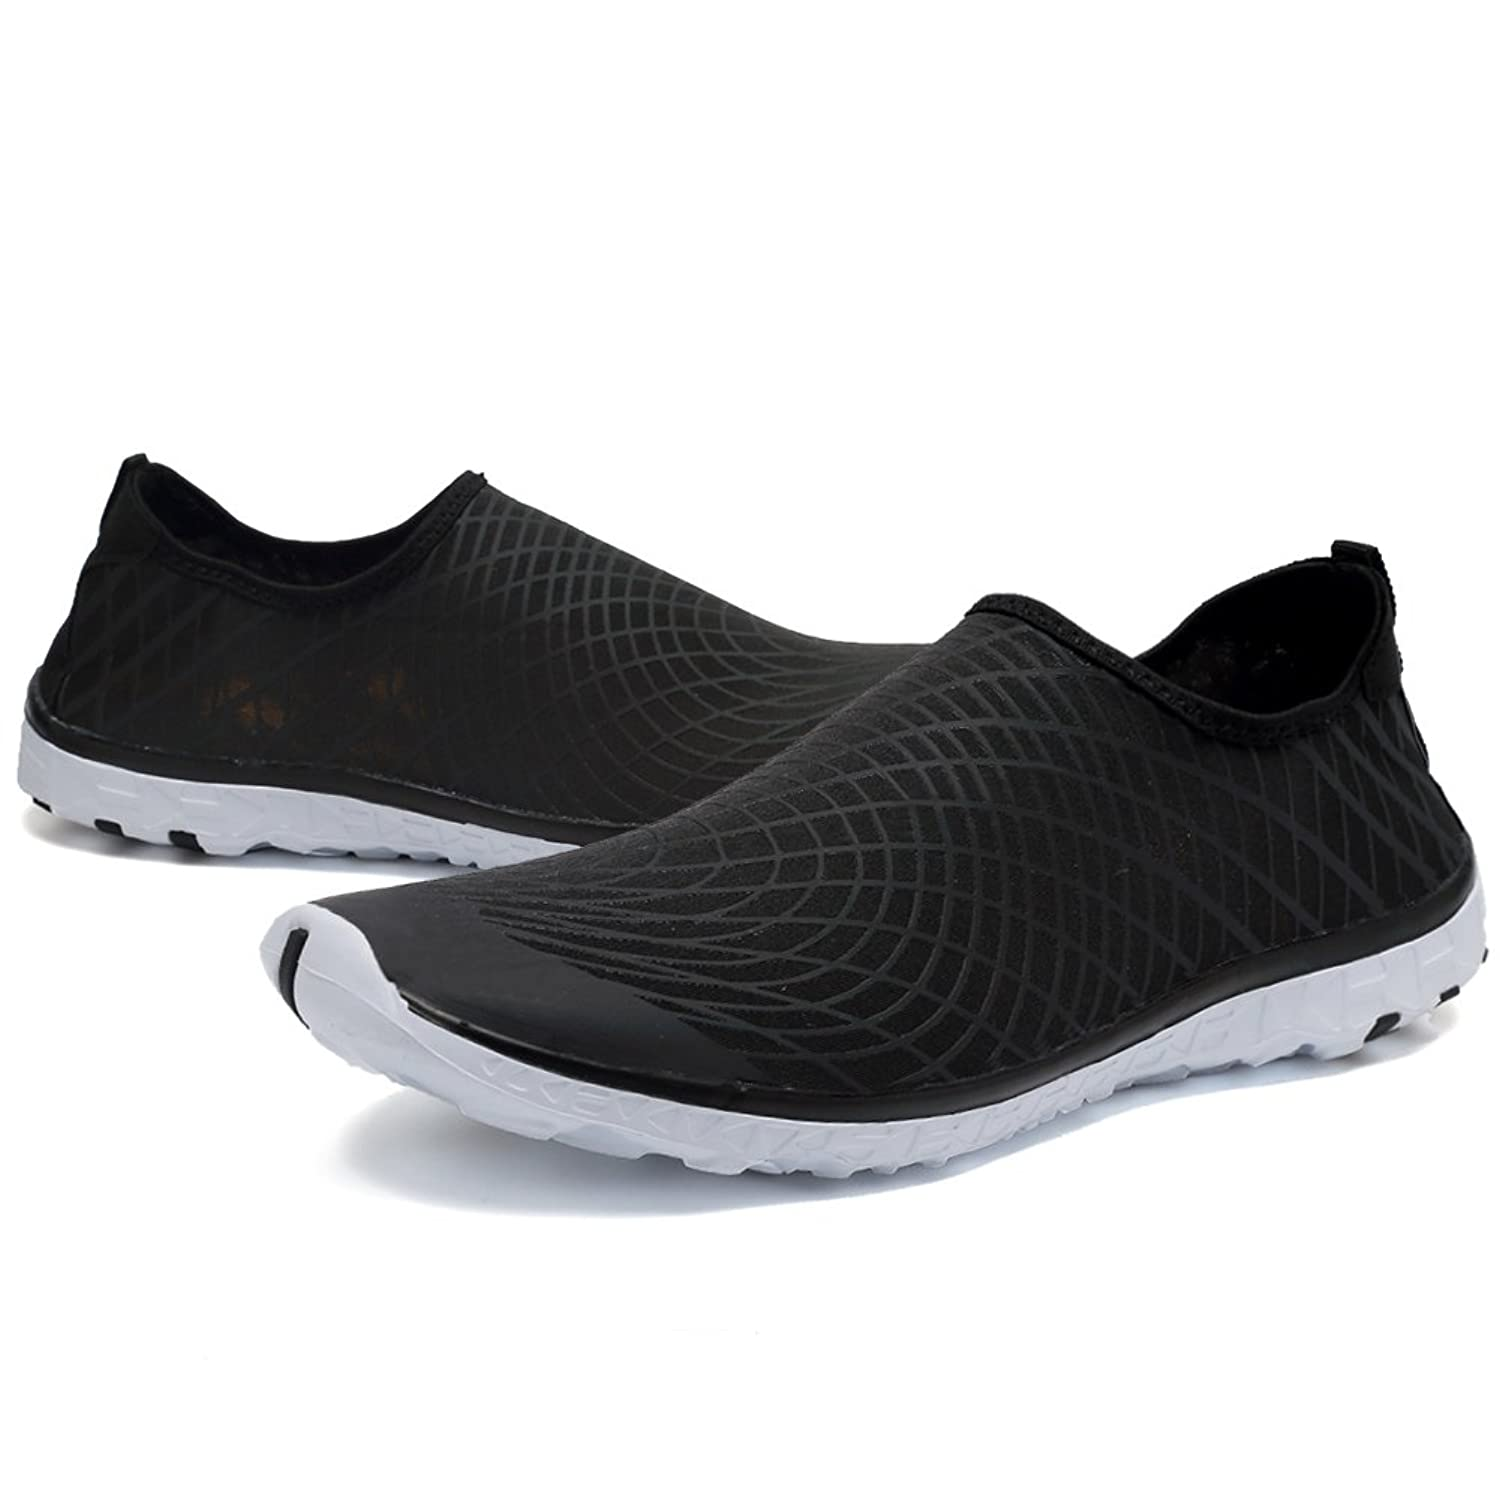 CIOR FANTINY Water Shoes Lightweight Barefoot Quick-Dry Slip-On For Women and Men Walking Sneakers,VSL01,Black,42